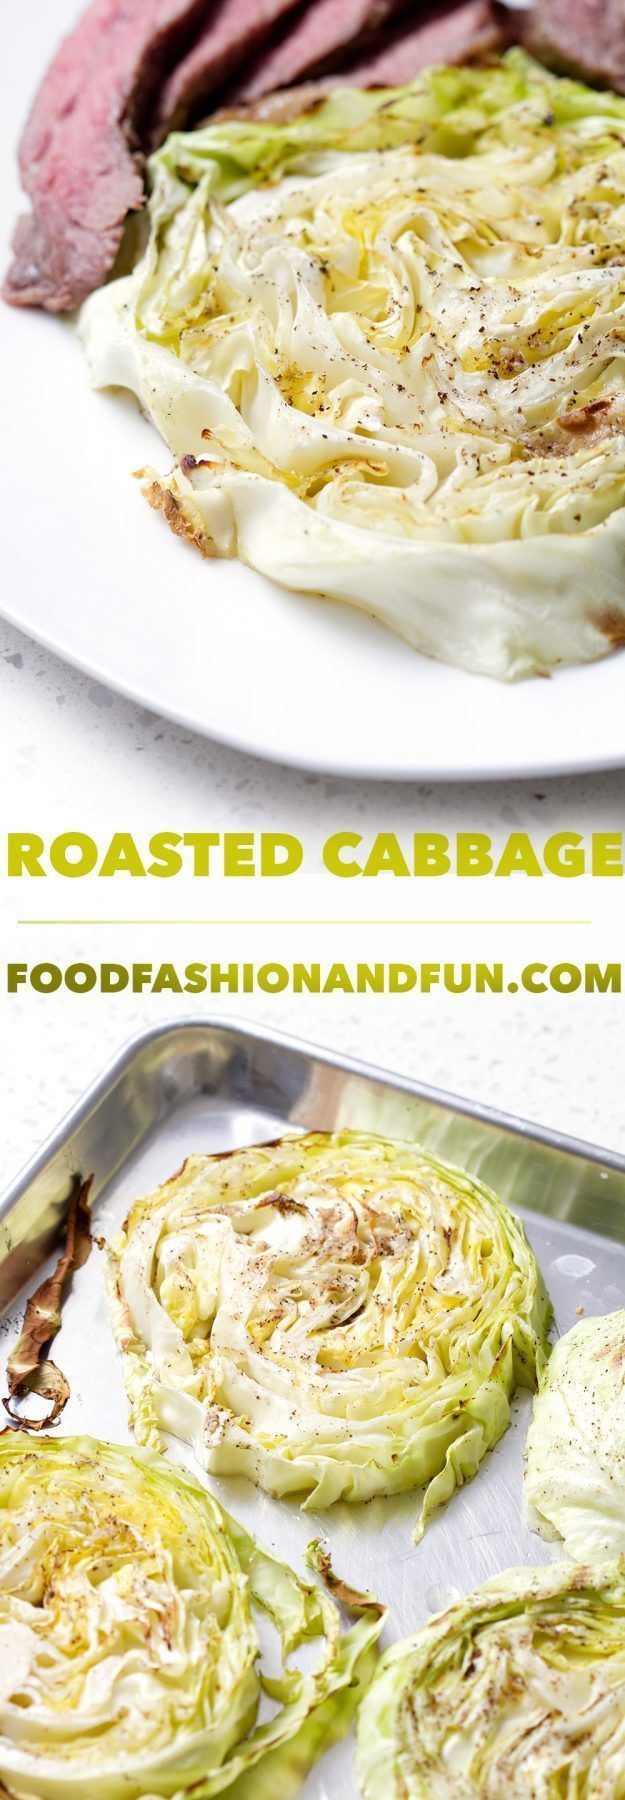 This 4-ingredient Oven Roasted Cabbage that is a delicious and easy as a side to corned beef or steak. This recipe is allergy friendly (gluten, dairy, shellfish, nut, egg, and soy free) and suits the autoimmune protocol, paleo and vegan diets.